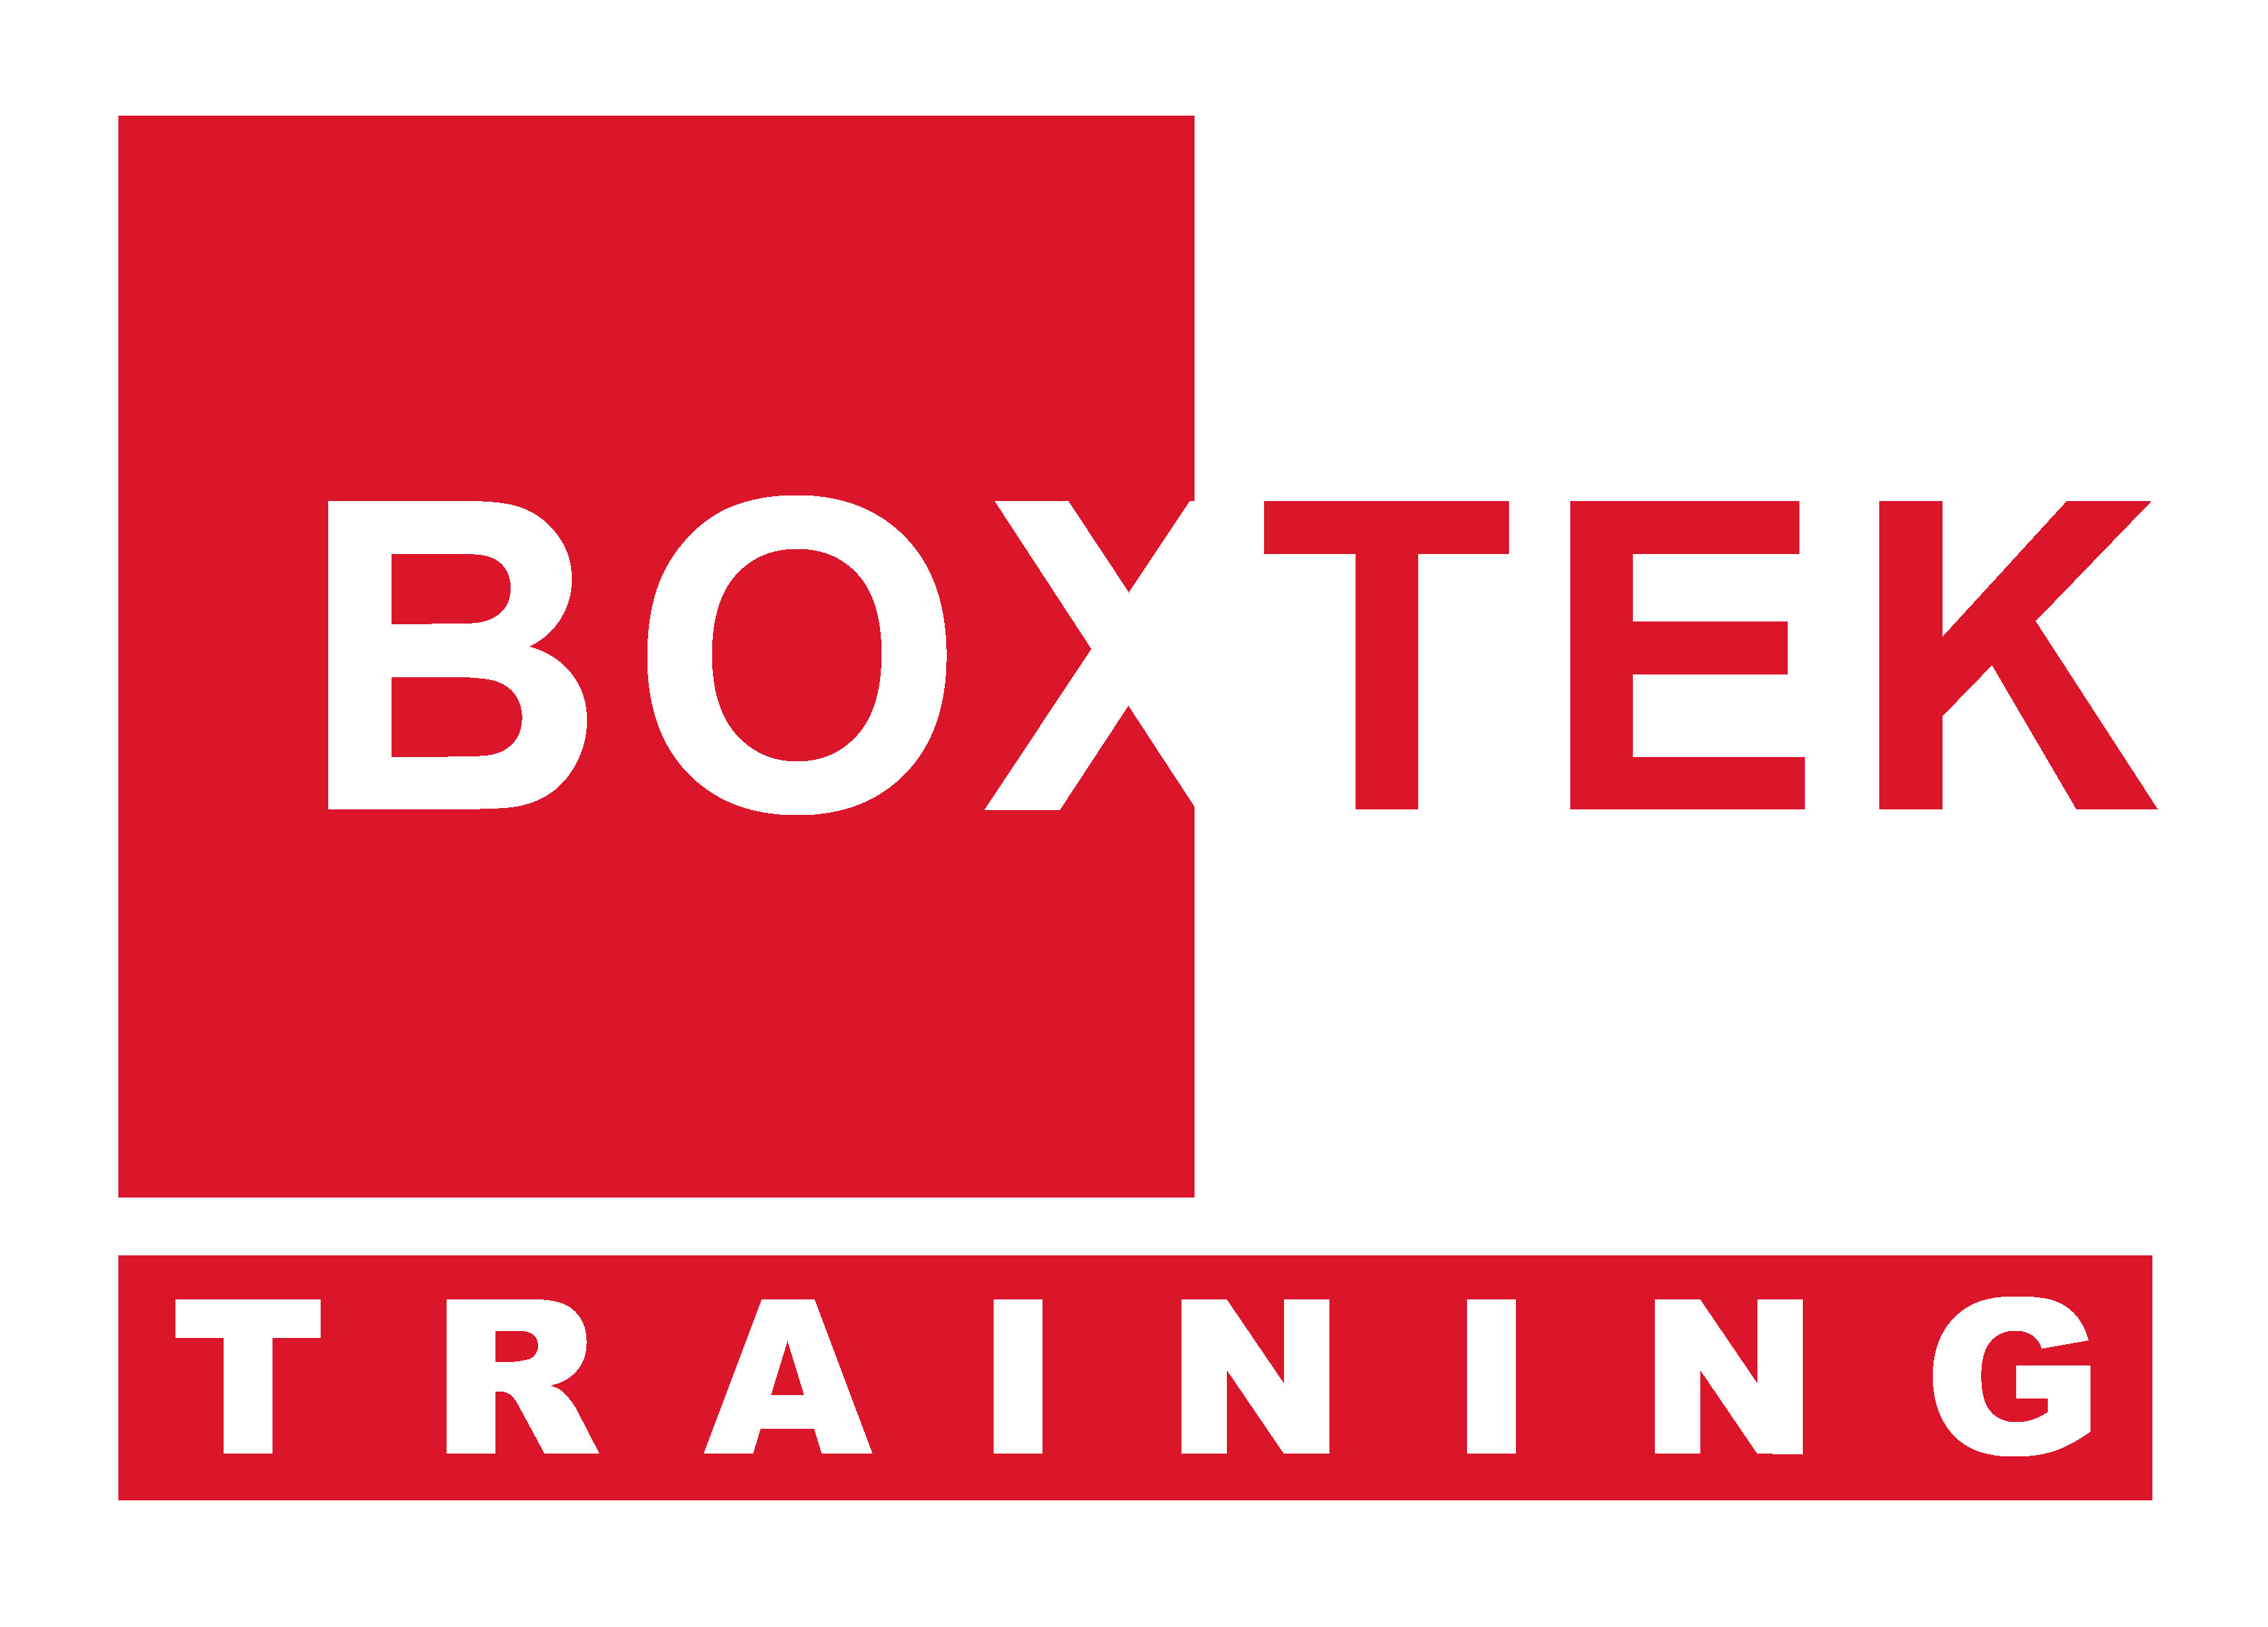 Defensive Boxing at Fe Gym event tickets from TicketSource